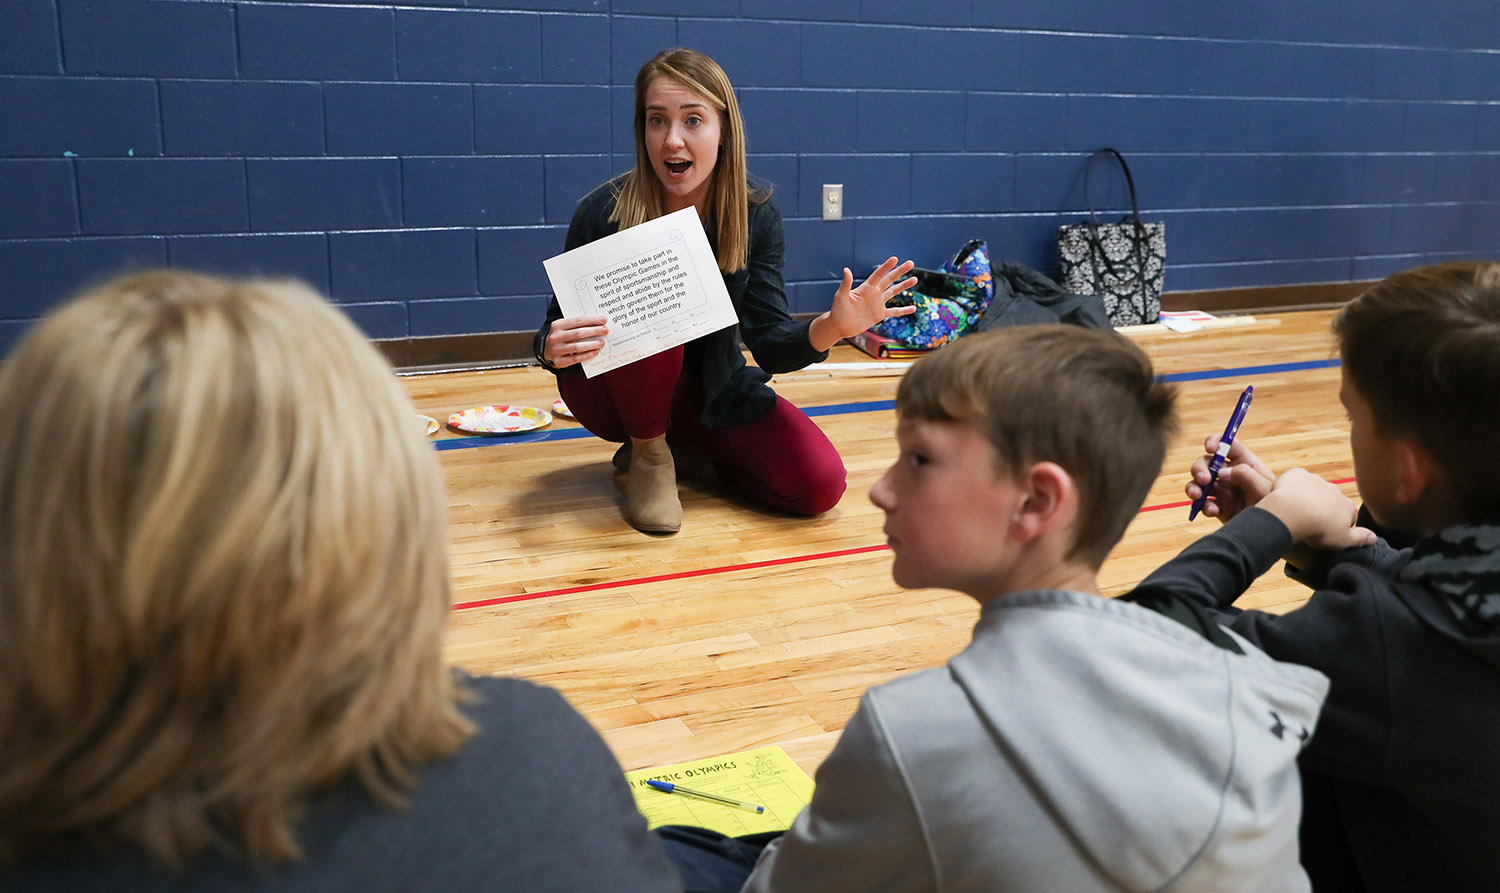 UNK student Mary Dworak of Omaha begins an activity Friday during the Measurement Olympics at Windy Hills Elementary School in Kearney.